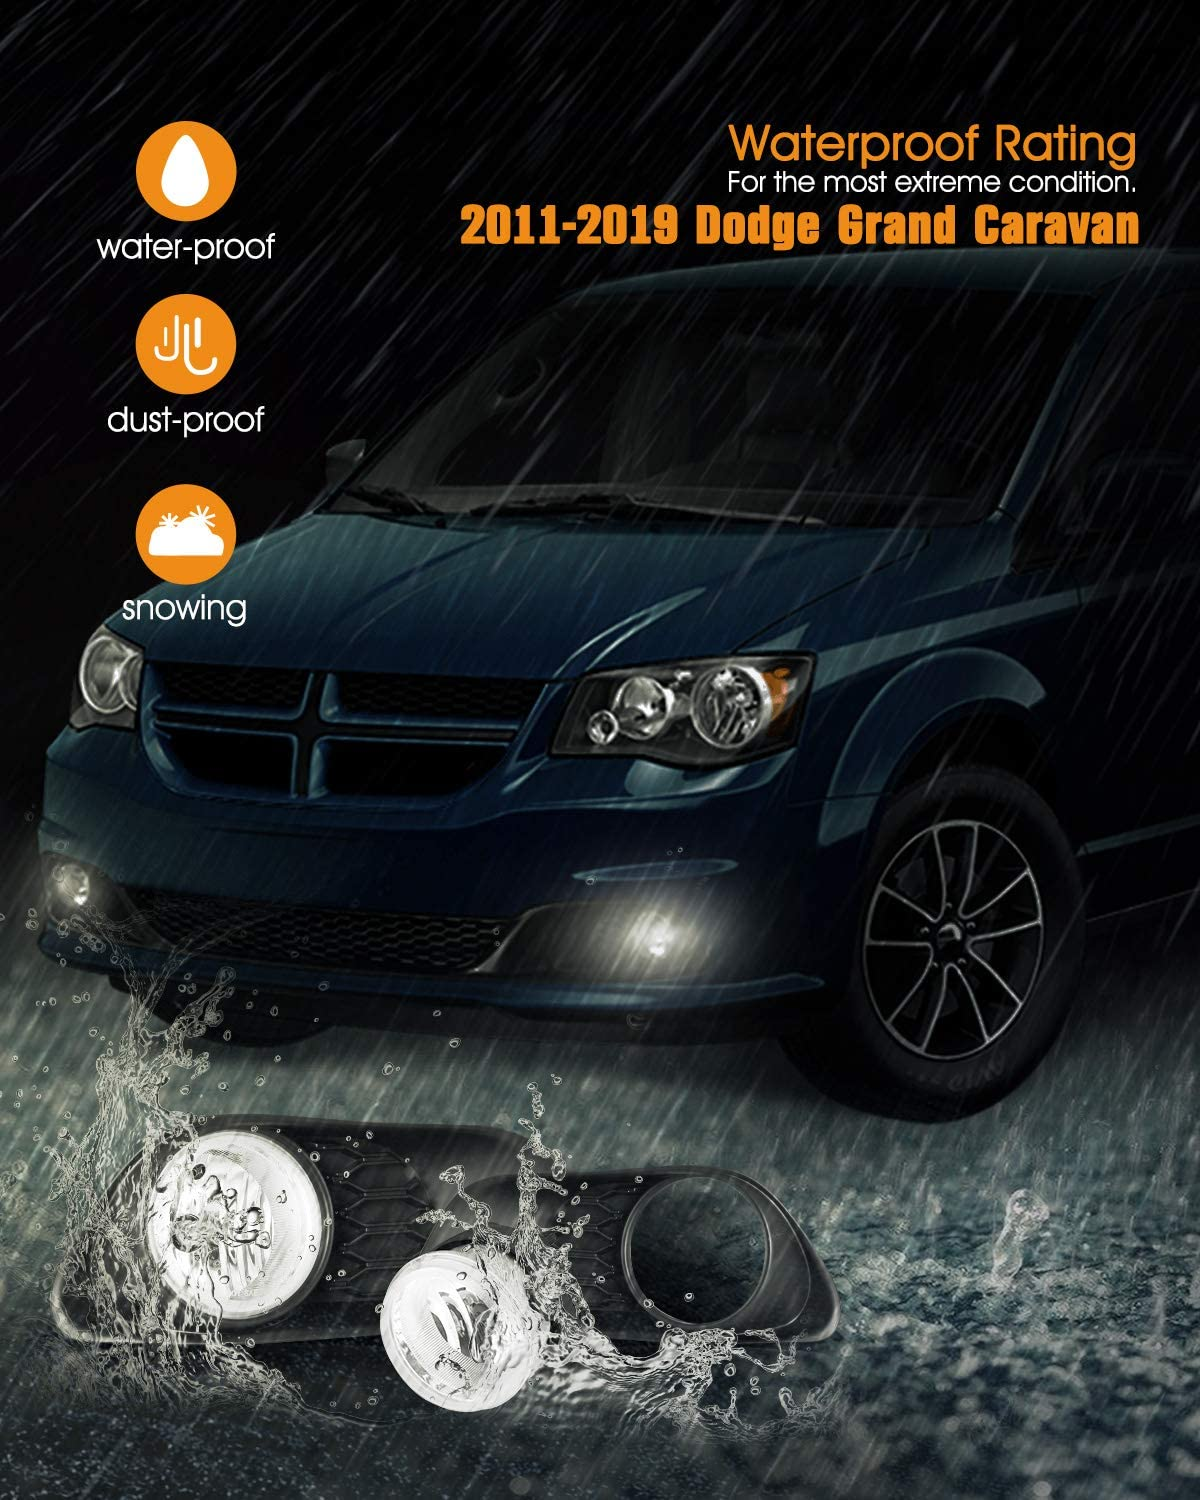 1 Pair Fog Lights for 11-19 Dodge Grand Caravan with Bulbs H10 12V42W AUTOFREE Fog Lamps Assembly Wiring Kit /& Switch Included Clear Lens